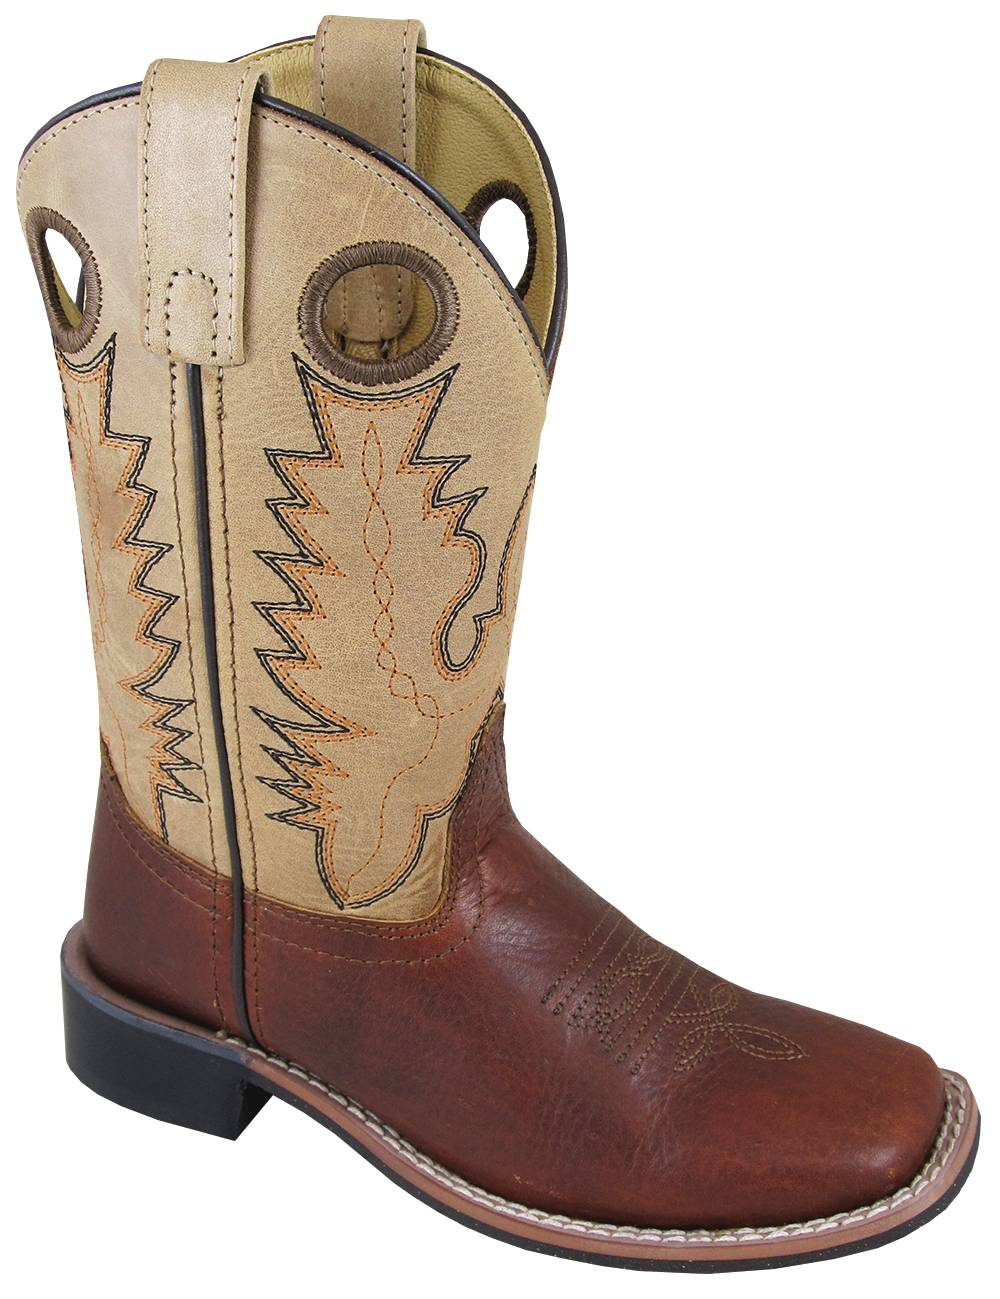 Smoky Mountain Jesse Boots - Children's - Brown/Tan